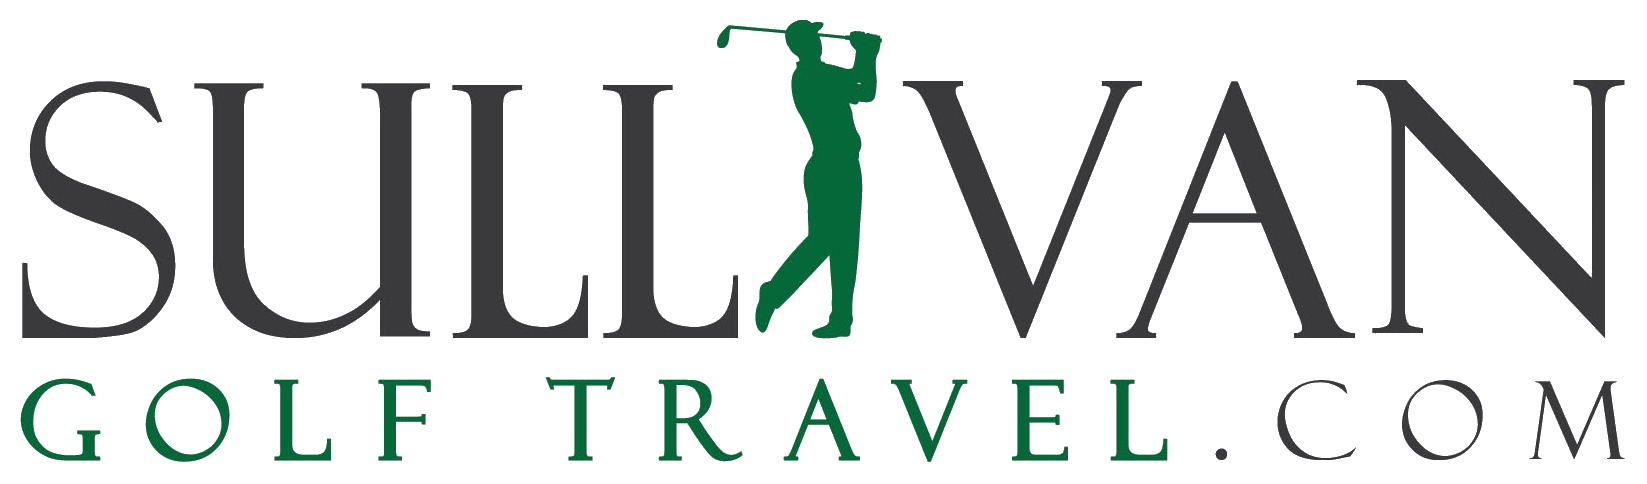 Sullivan Golf Travel's Logo